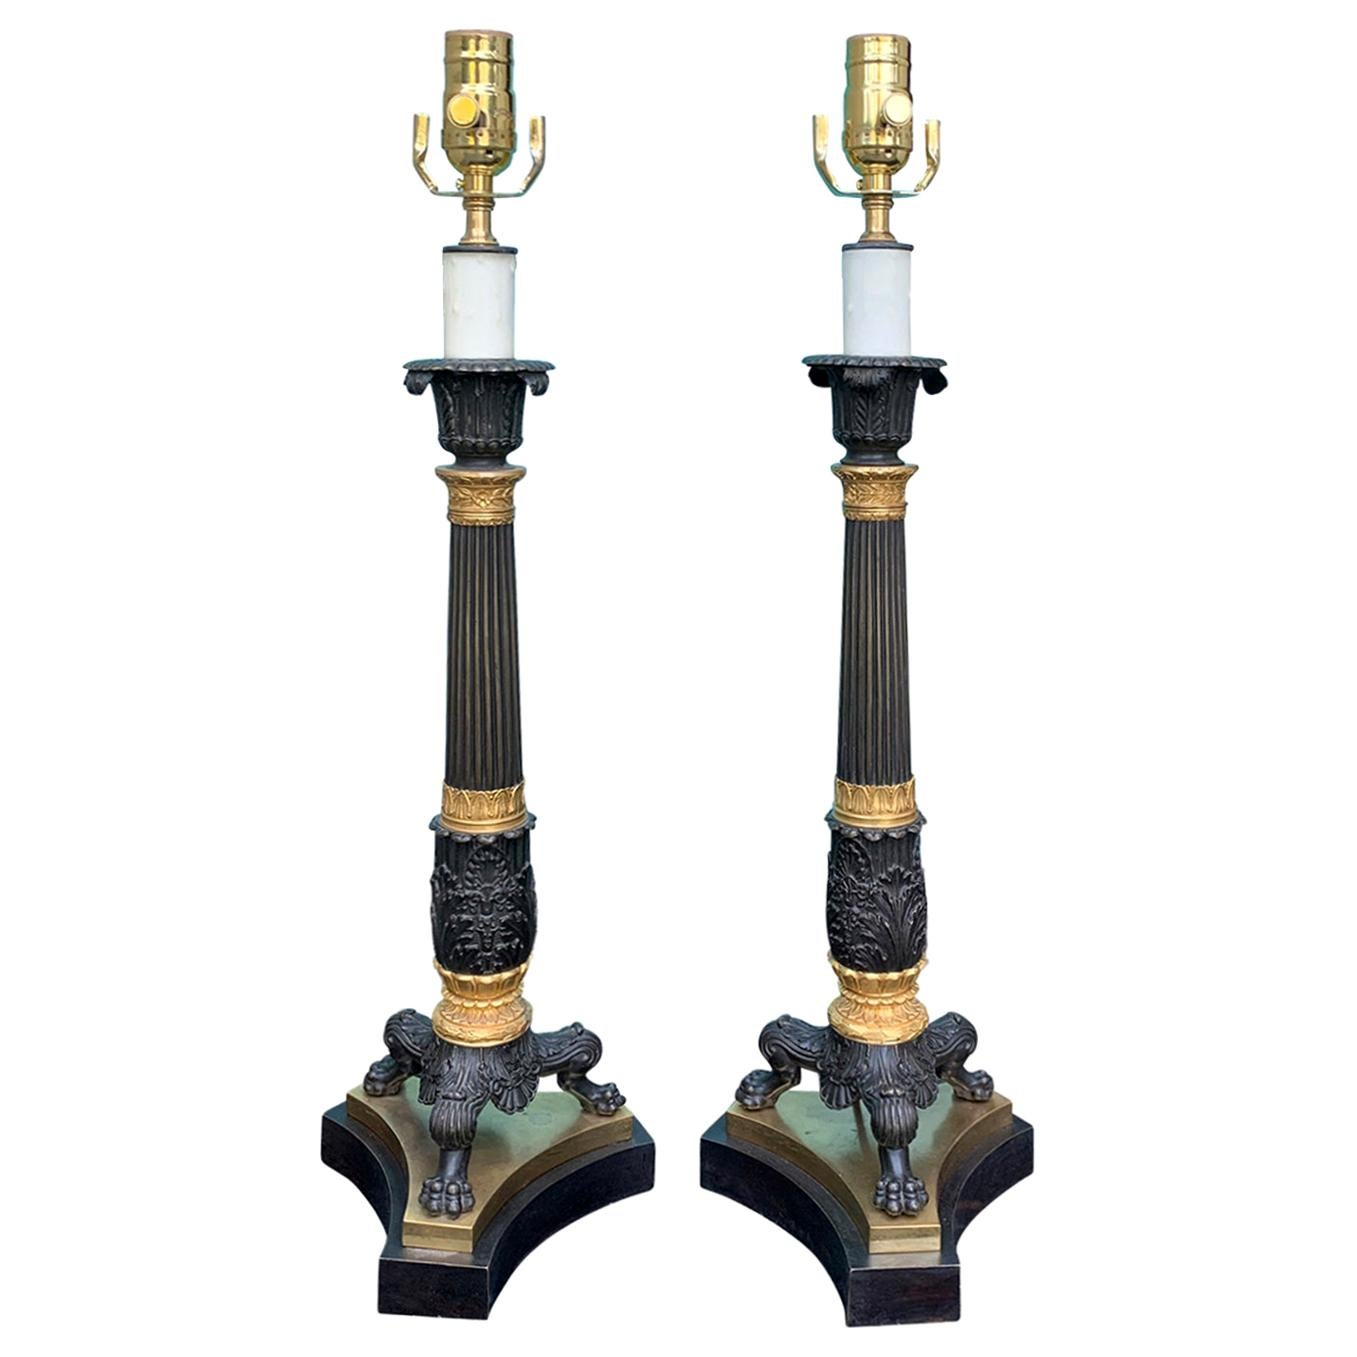 Pair of 19th Century English Regency Gilt and Bronze Candelabras as Lamps